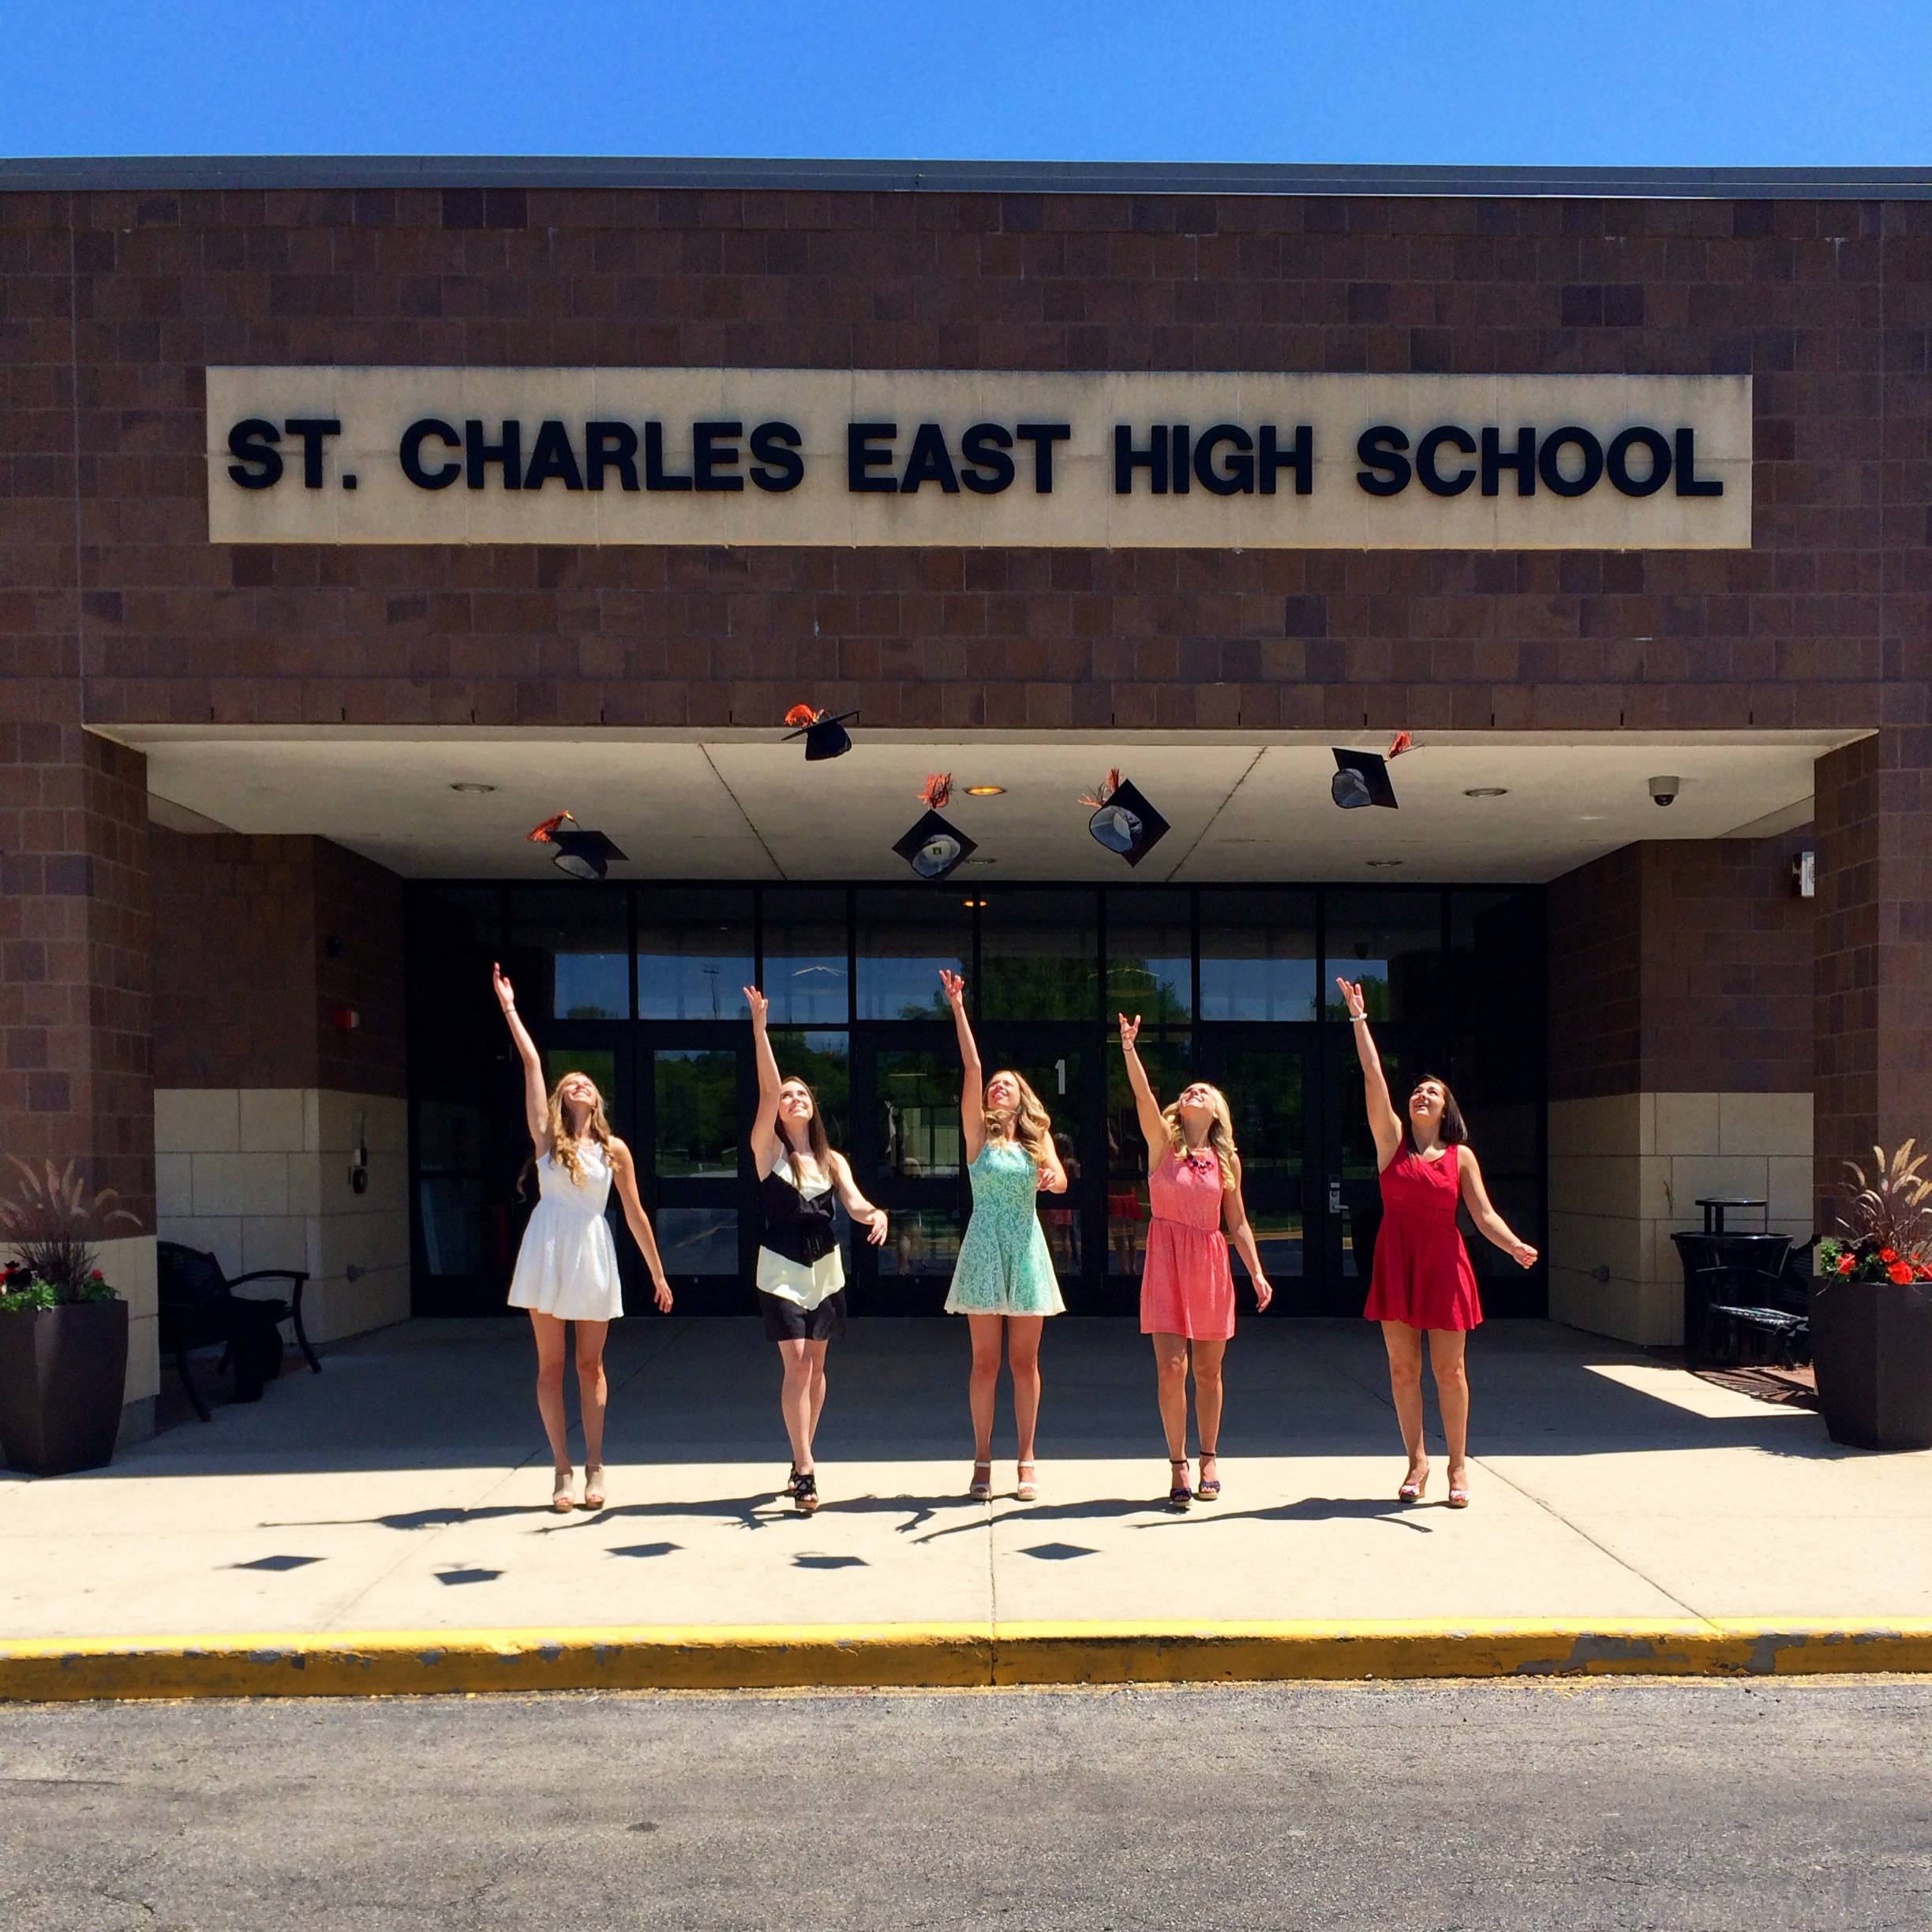 I took this picture of my daughter Nicole and her friends, Fiona, Ashley, Courtney and Cara on graduation day in front of St. Charles East High School. I love this picture because the hats show up so nicely against the white ceiling, and you can also see their shadow on the ground all in a row.